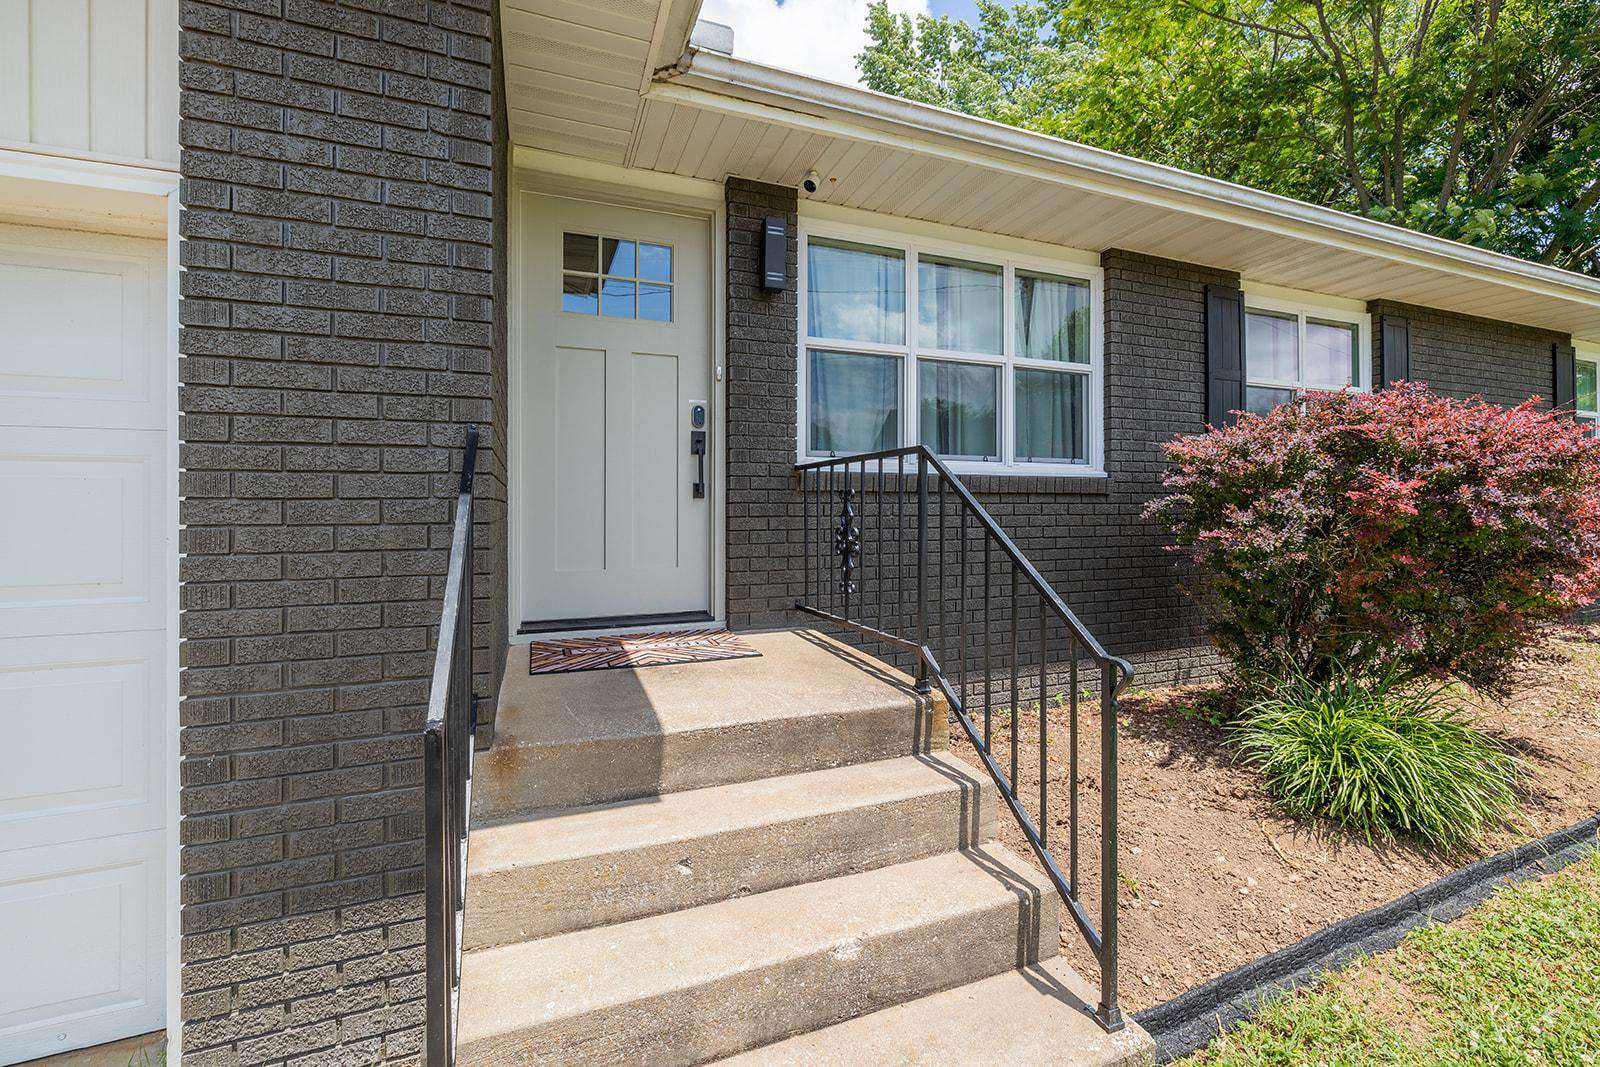 Handrails, make these steps easy. Keyless entry on the door. Let yourself in!